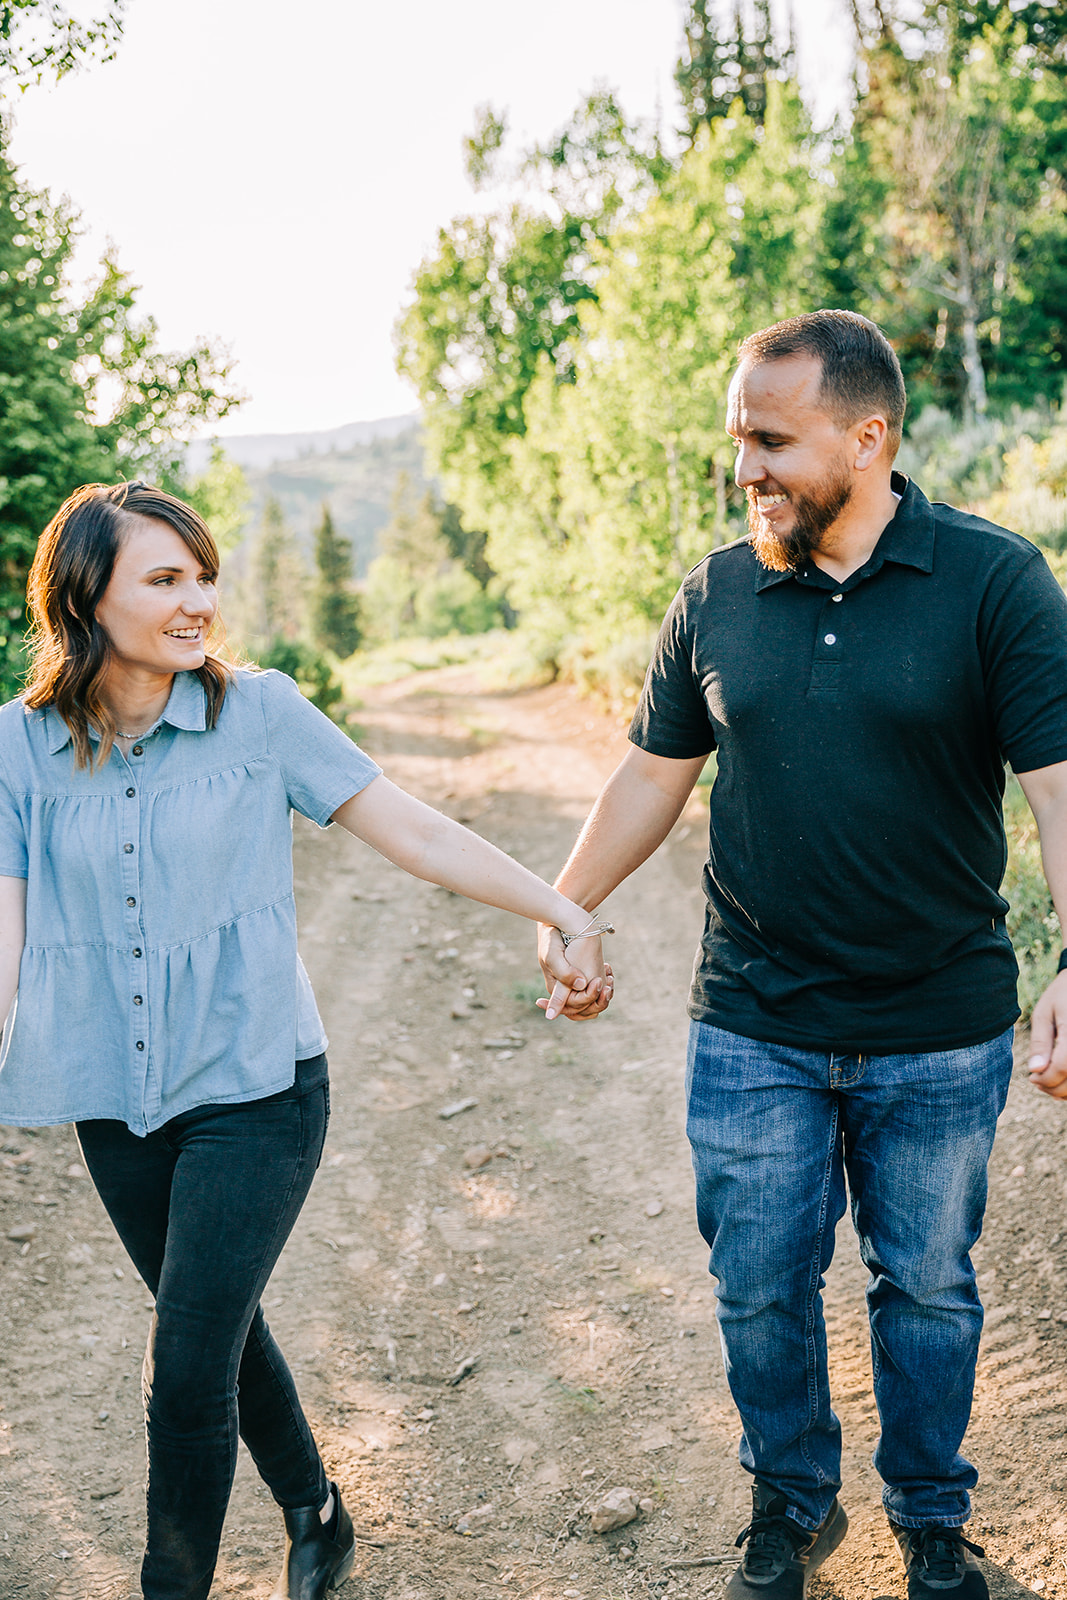 Couple holding hands during mountain engagement photo shoot in Cache Valley, Utah by professional engagement photographer Bella Alder Photography #bellaalderphoto #engagements #utahengagements #engagementphotographer #engagementphotography #loganutahengagementphotographer #utahengagements #utahengagementphotographer #mountains #mountainengagements #weddingplanning #utahwedding